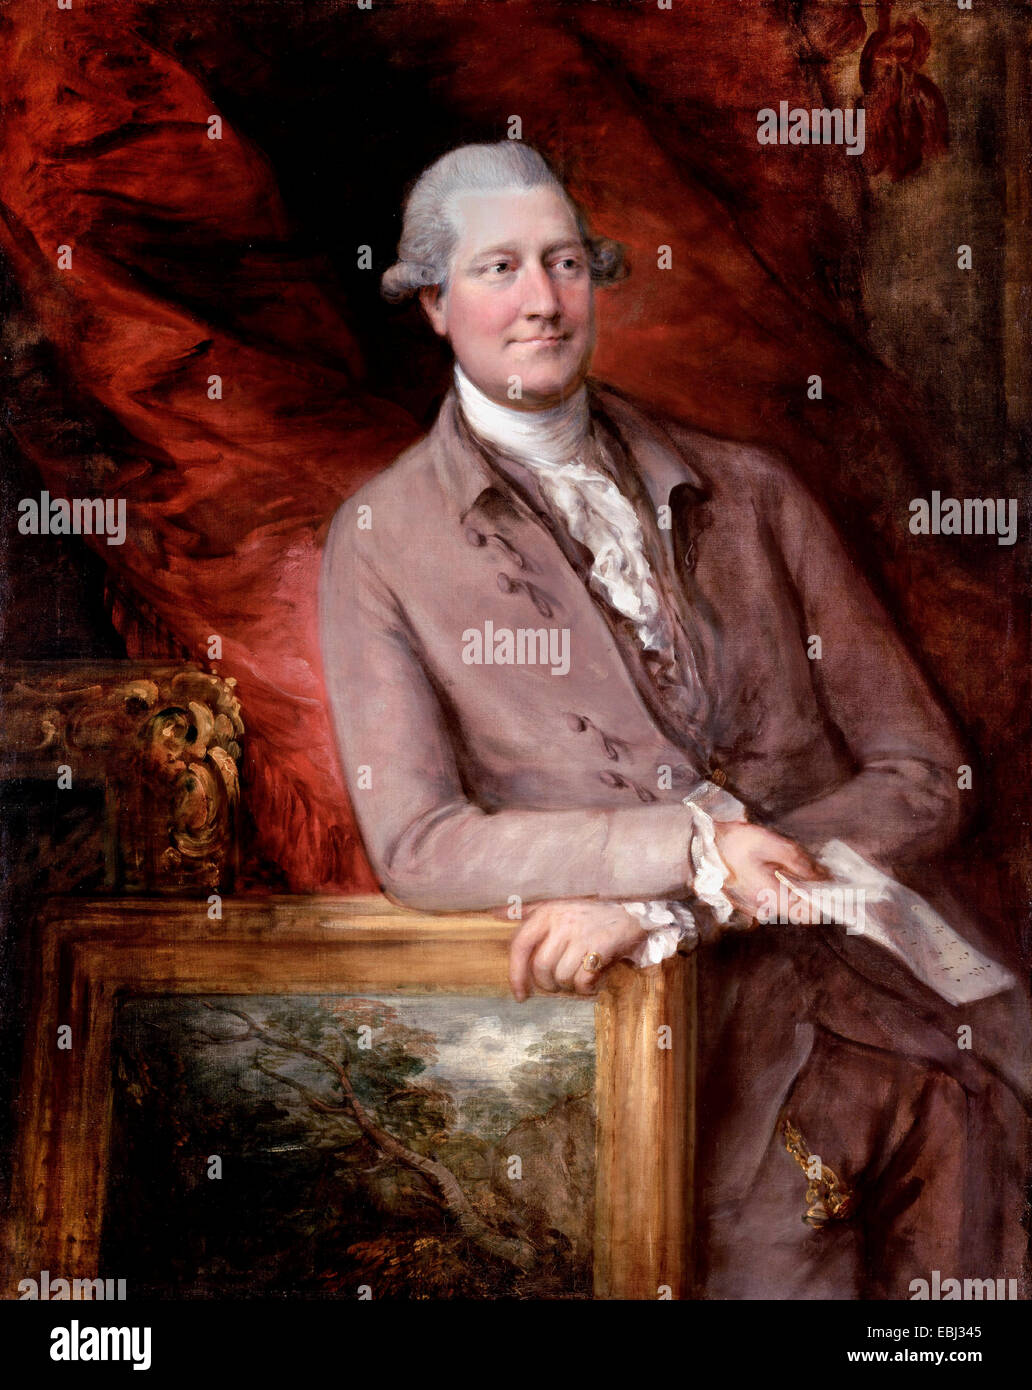 Thomas Gainsborough, Portrait of James Christie 1778 Oil on canvas. . Paul Getty Museum, Los Angeles, USA. - Stock Image